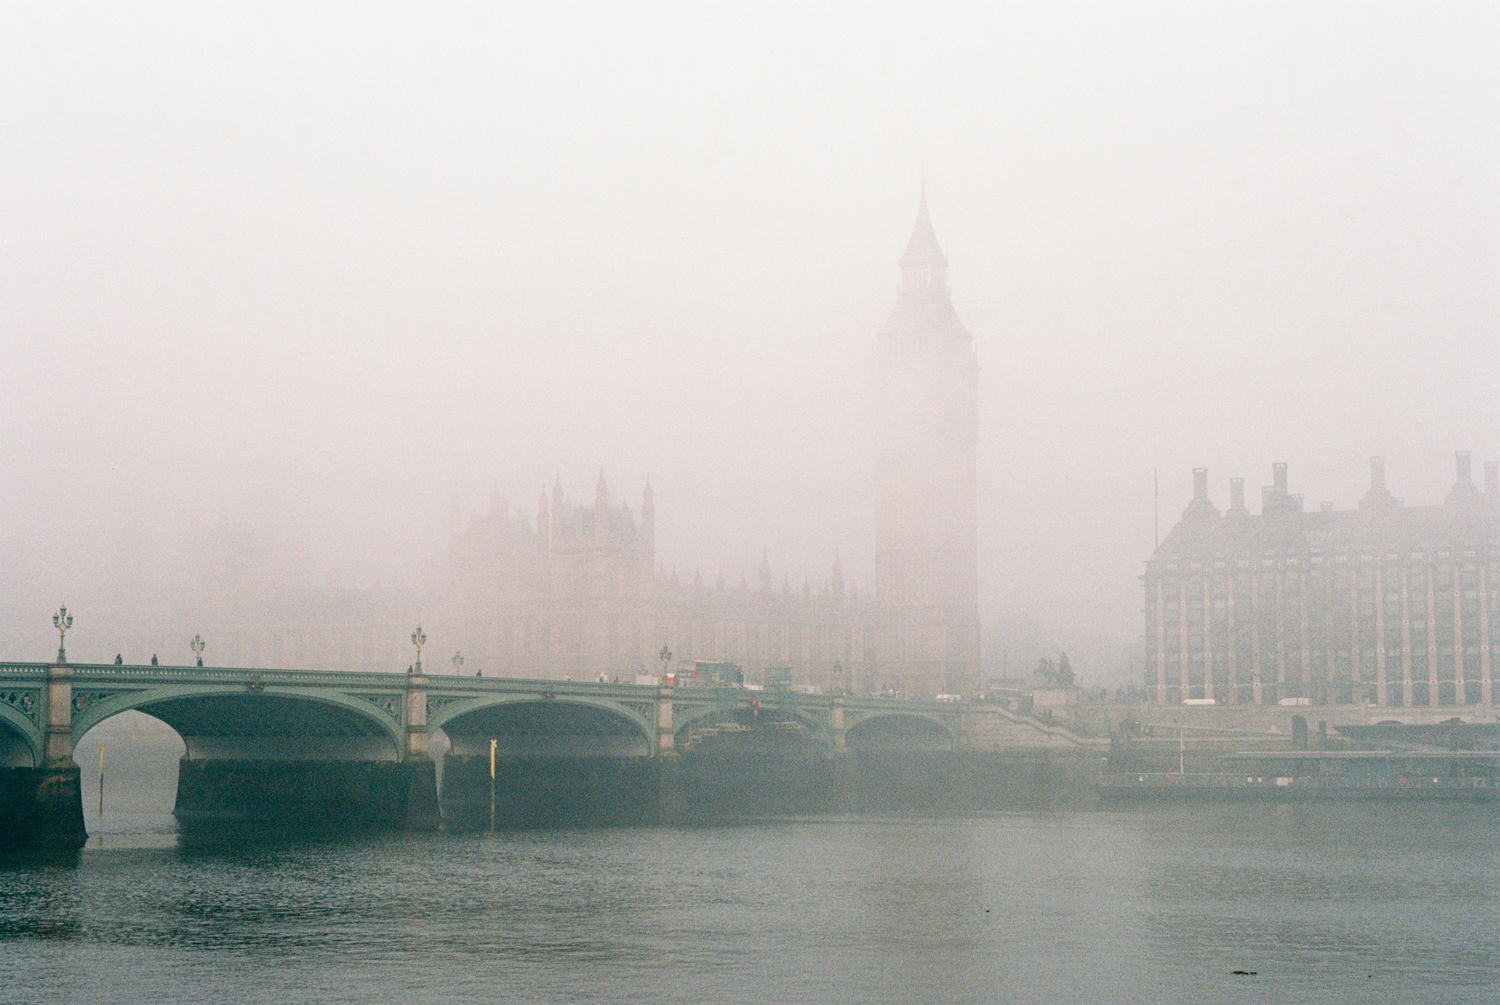 08_london_big_ben_fog.jpg